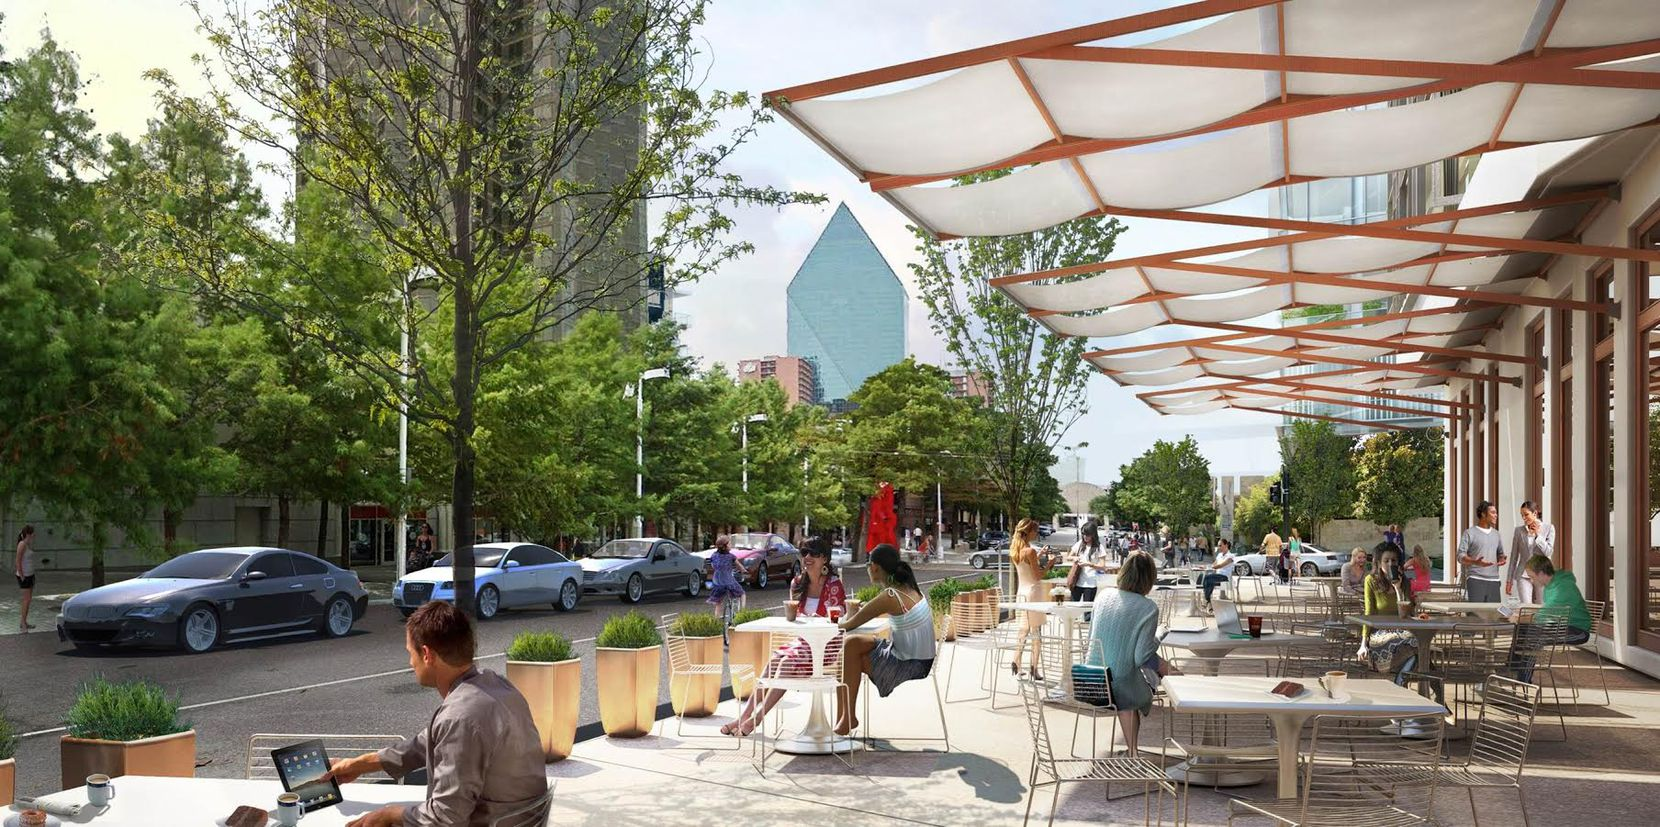 This would look good along Flora Street. It's in the new Arts District master plan. (Should be noted, this identical to a rendering NBBJ used for a project in Cambridge, Mass.)